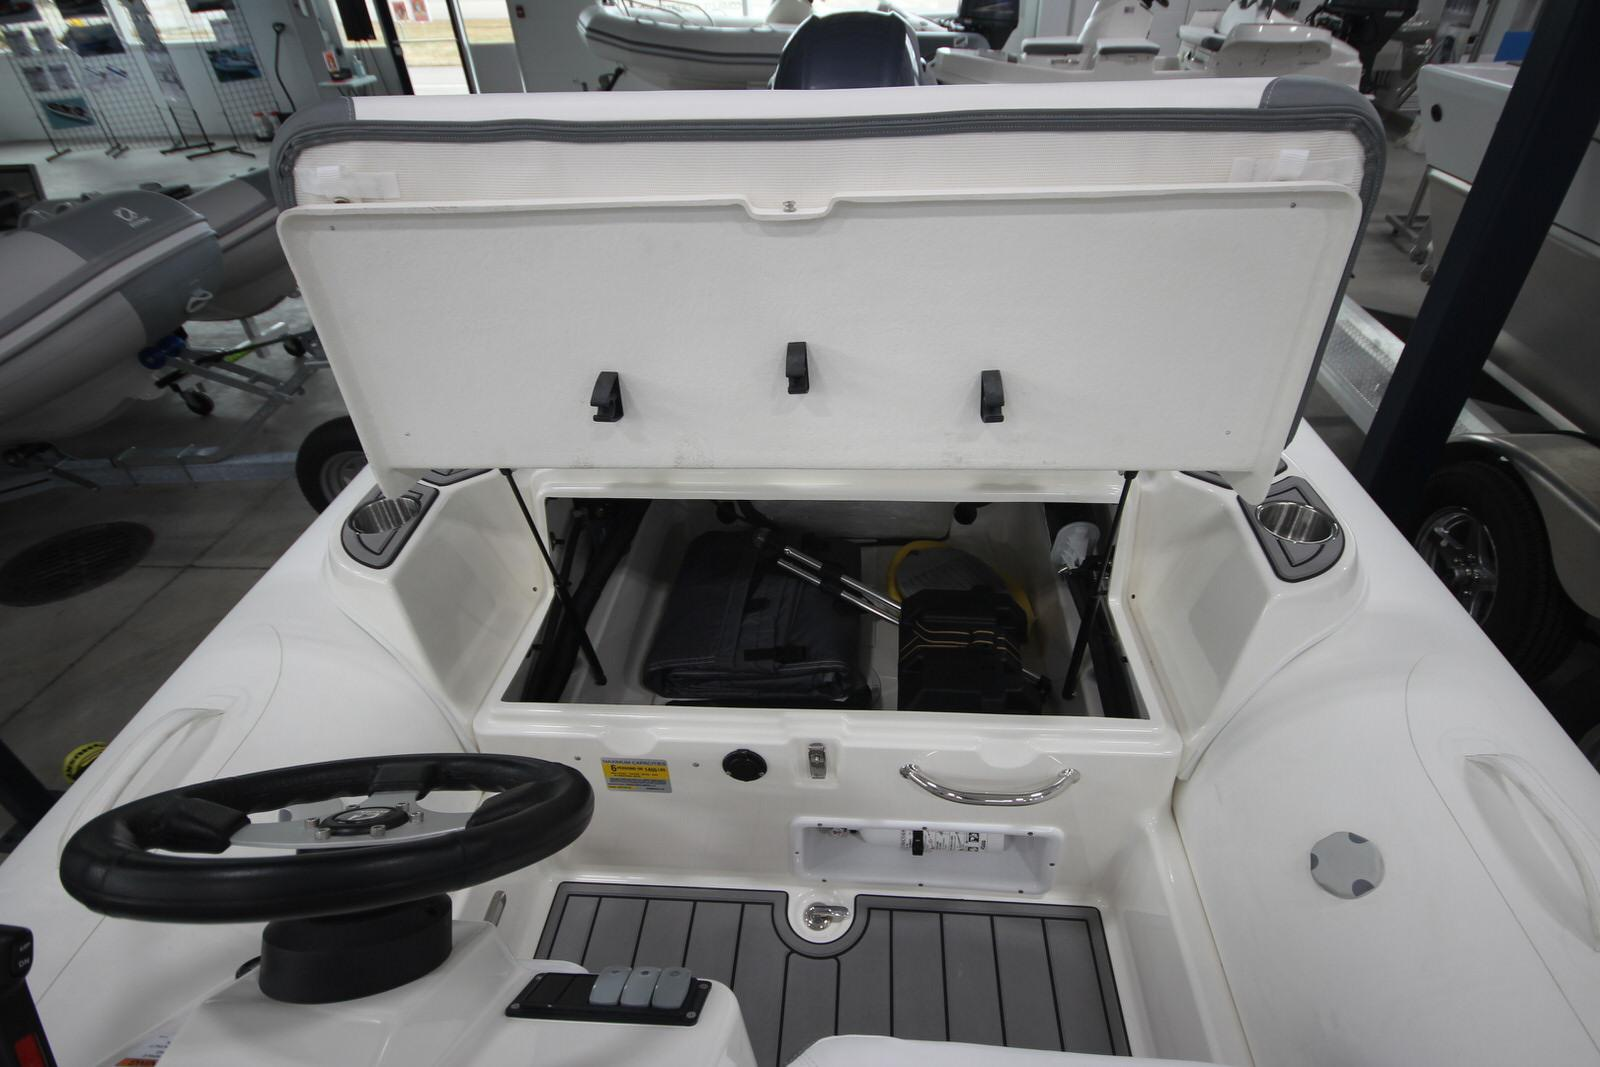 2022 Zodiac Yachtline 490 Deluxe NEO GL Edition 90hp On Order, Image 11